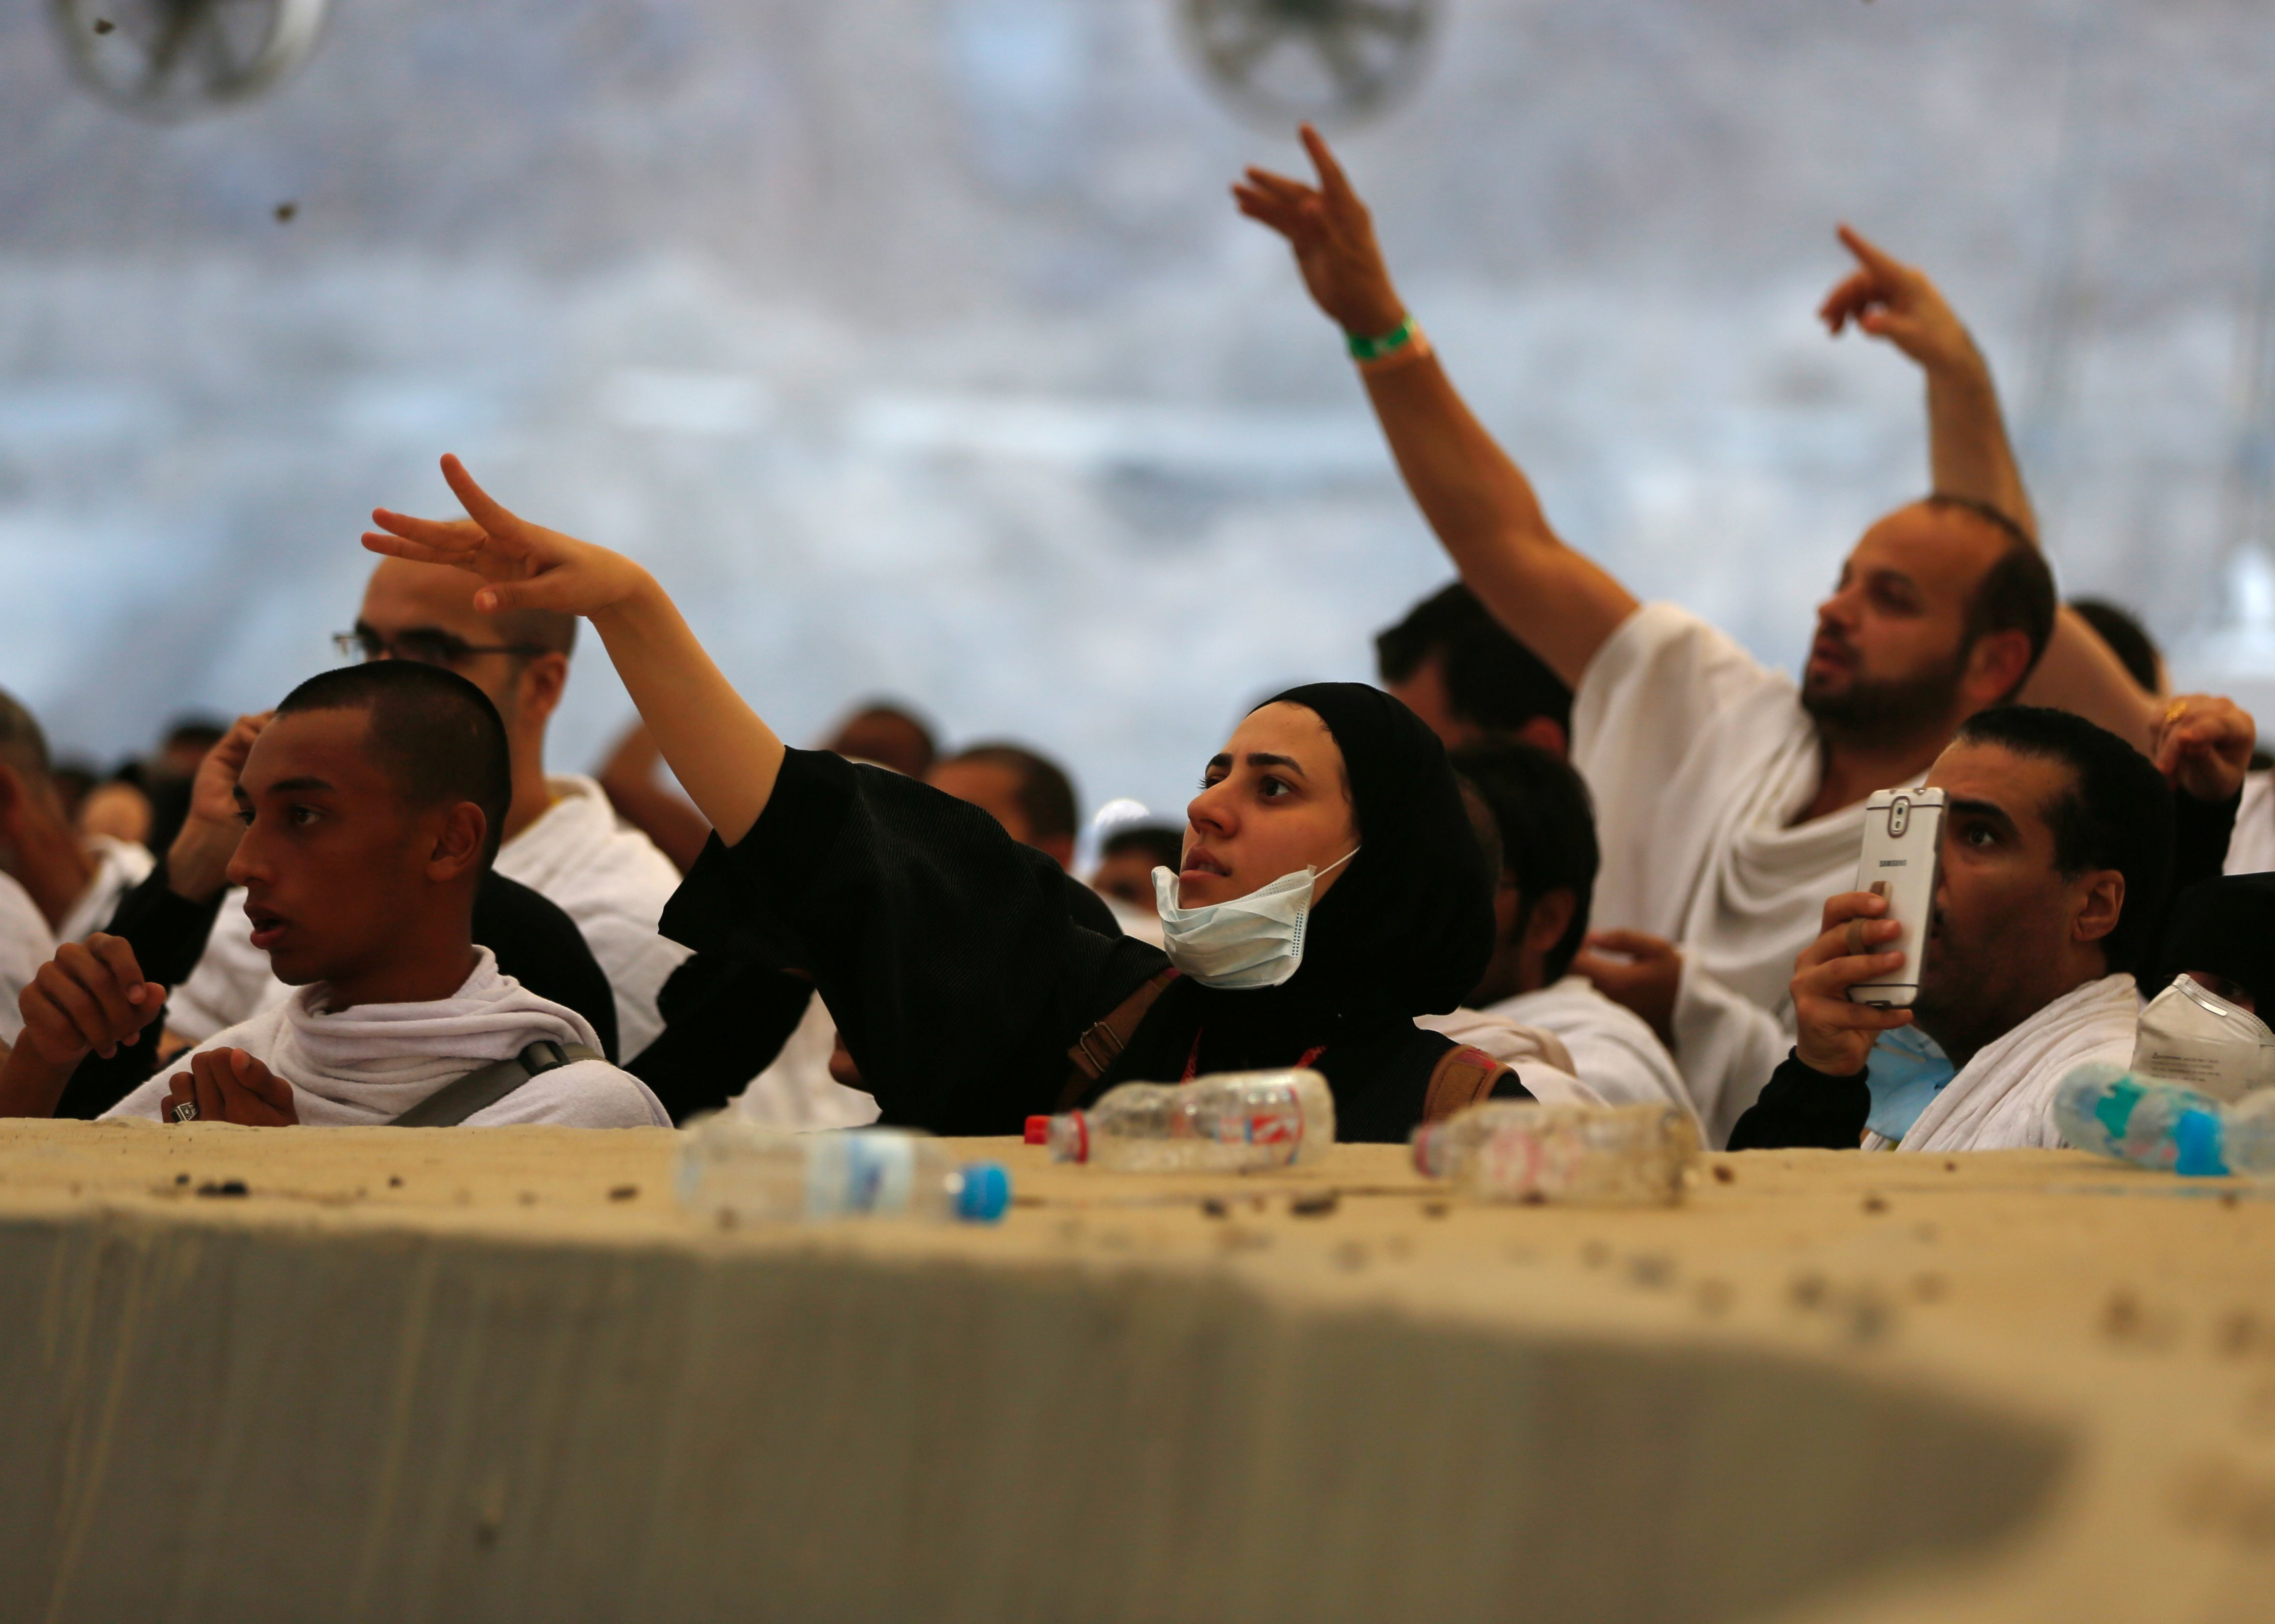 Muslim pilgrims throw pebbles at pillars during the 'Jamarat' ritual, the stoning of Satan, in Mina near the holy city of Mecca, on September 12, 2016.  Pilgrims pelt pillars symbolizing the devil with pebbles to show their defiance on the third day of the hajj as Muslims worldwide mark the Eid al-Adha or the Feast of the Sacrifice, marking the end of the hajj pilgrimage to Mecca and commemorating Abraham's willingness to sacrifice his son Ismail on God's command in the holy city of Mecca. / AFP / AHMAD GHARABLI        (Photo credit should read AHMAD GHARABLI/AFP/Getty Images)